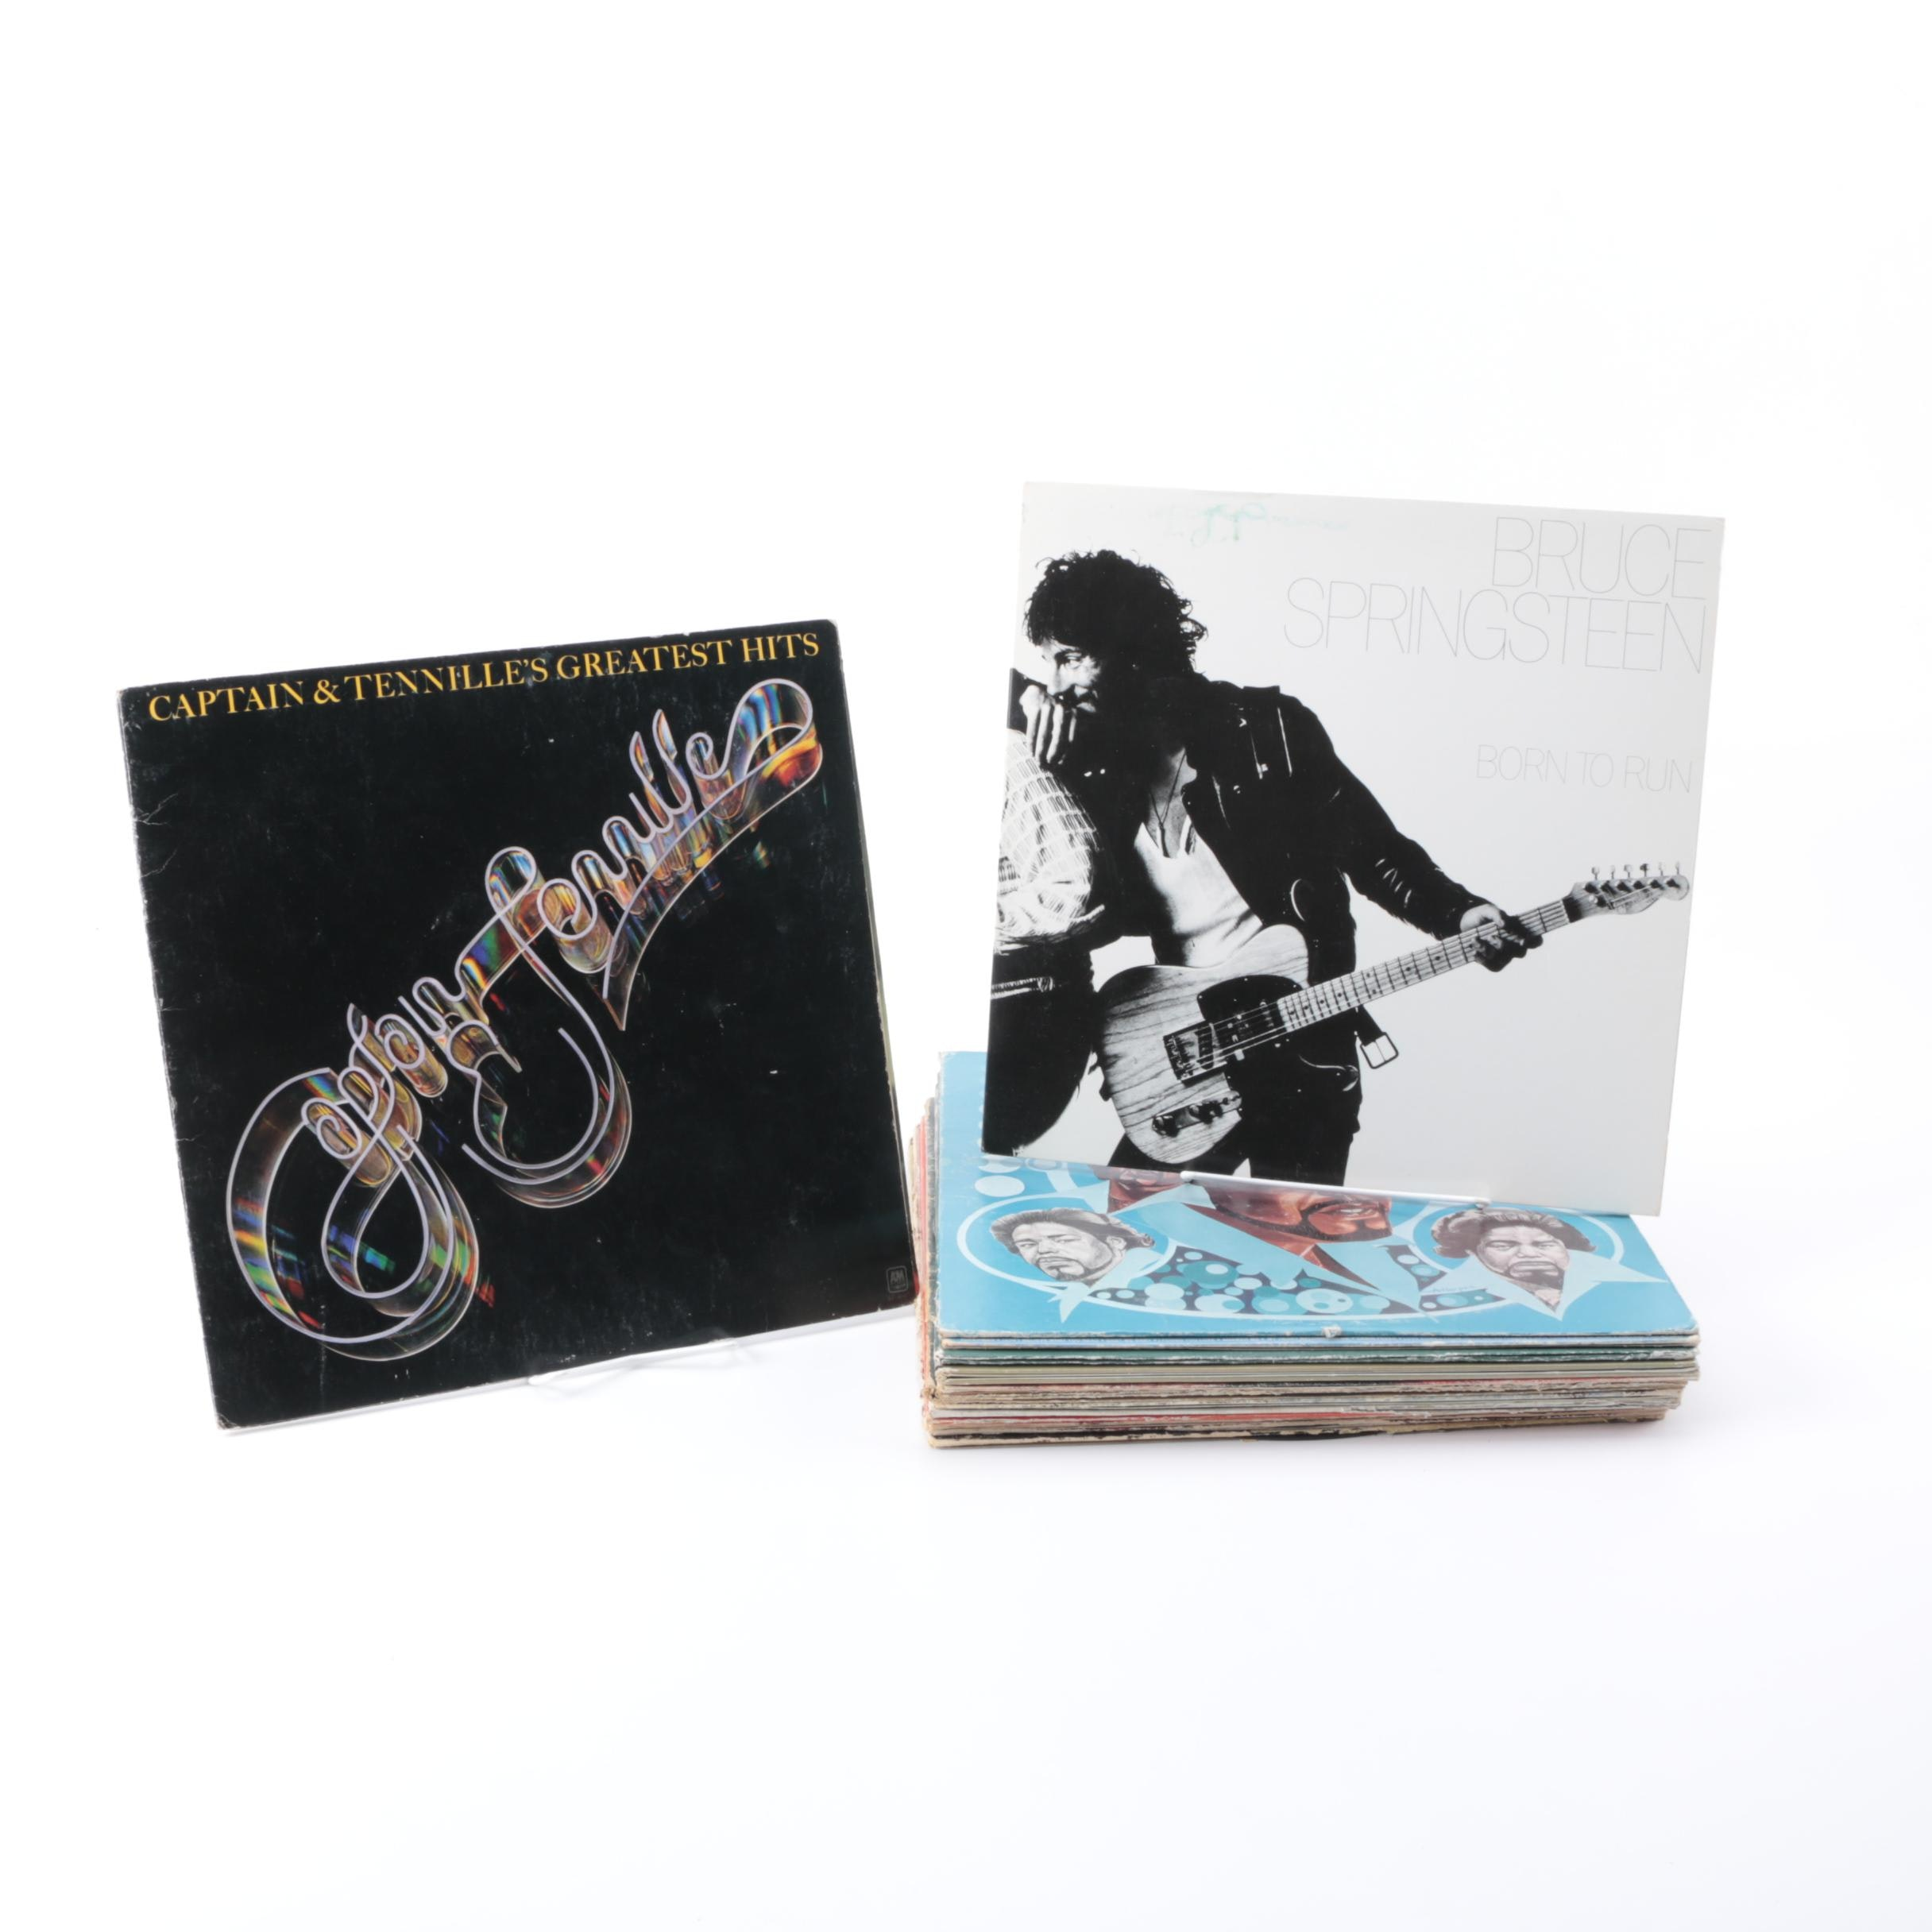 Springsteen, Neil Young and Other Folk, R&B and Classic Rock LPs